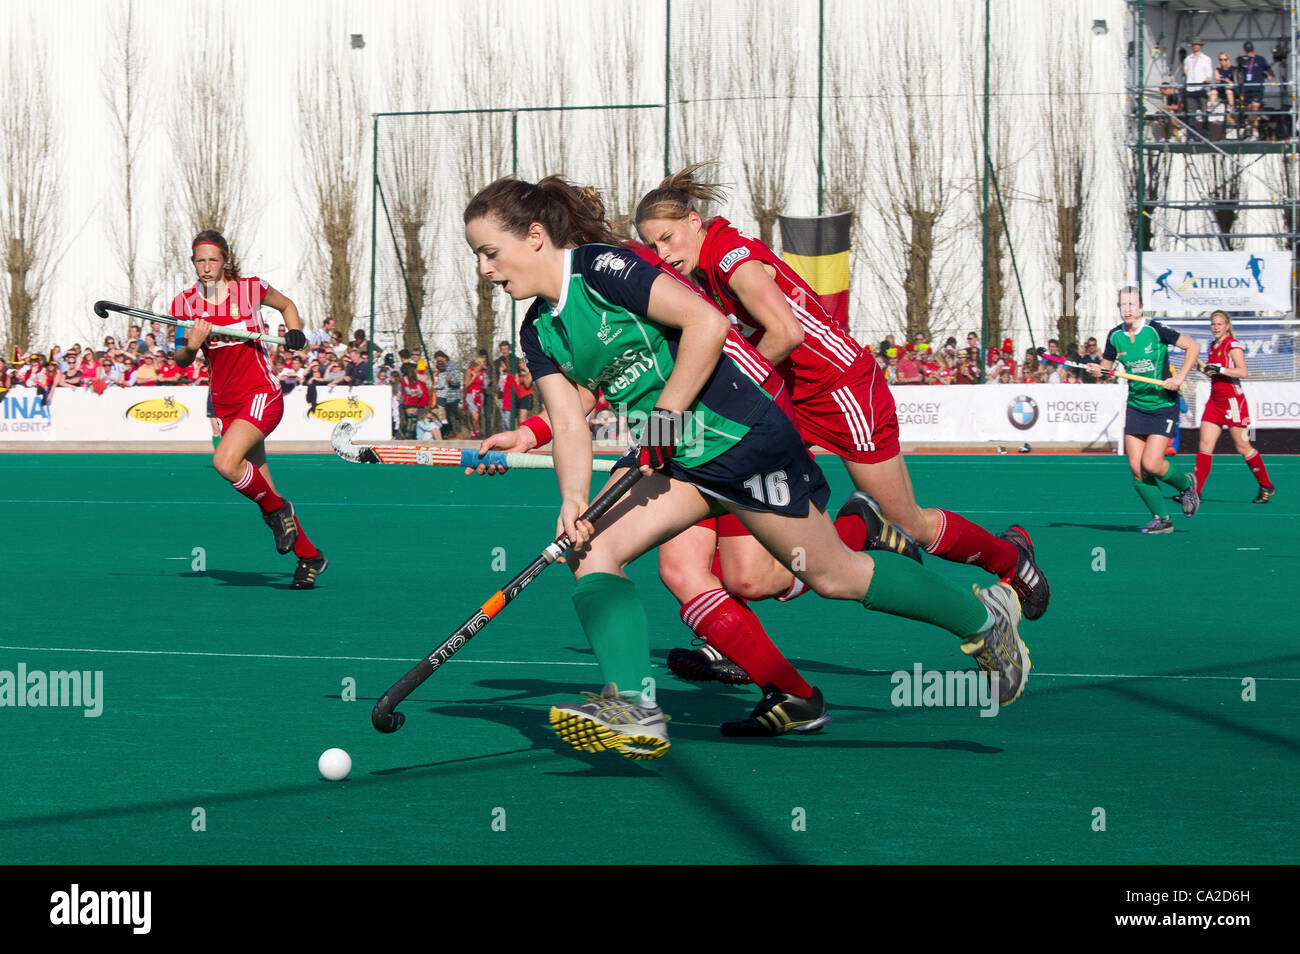 25.03.2012 - Kontich, Belgium - Pictured at the final of the Womens Hockey Olympic Qualifying Tournament between - Stock Image